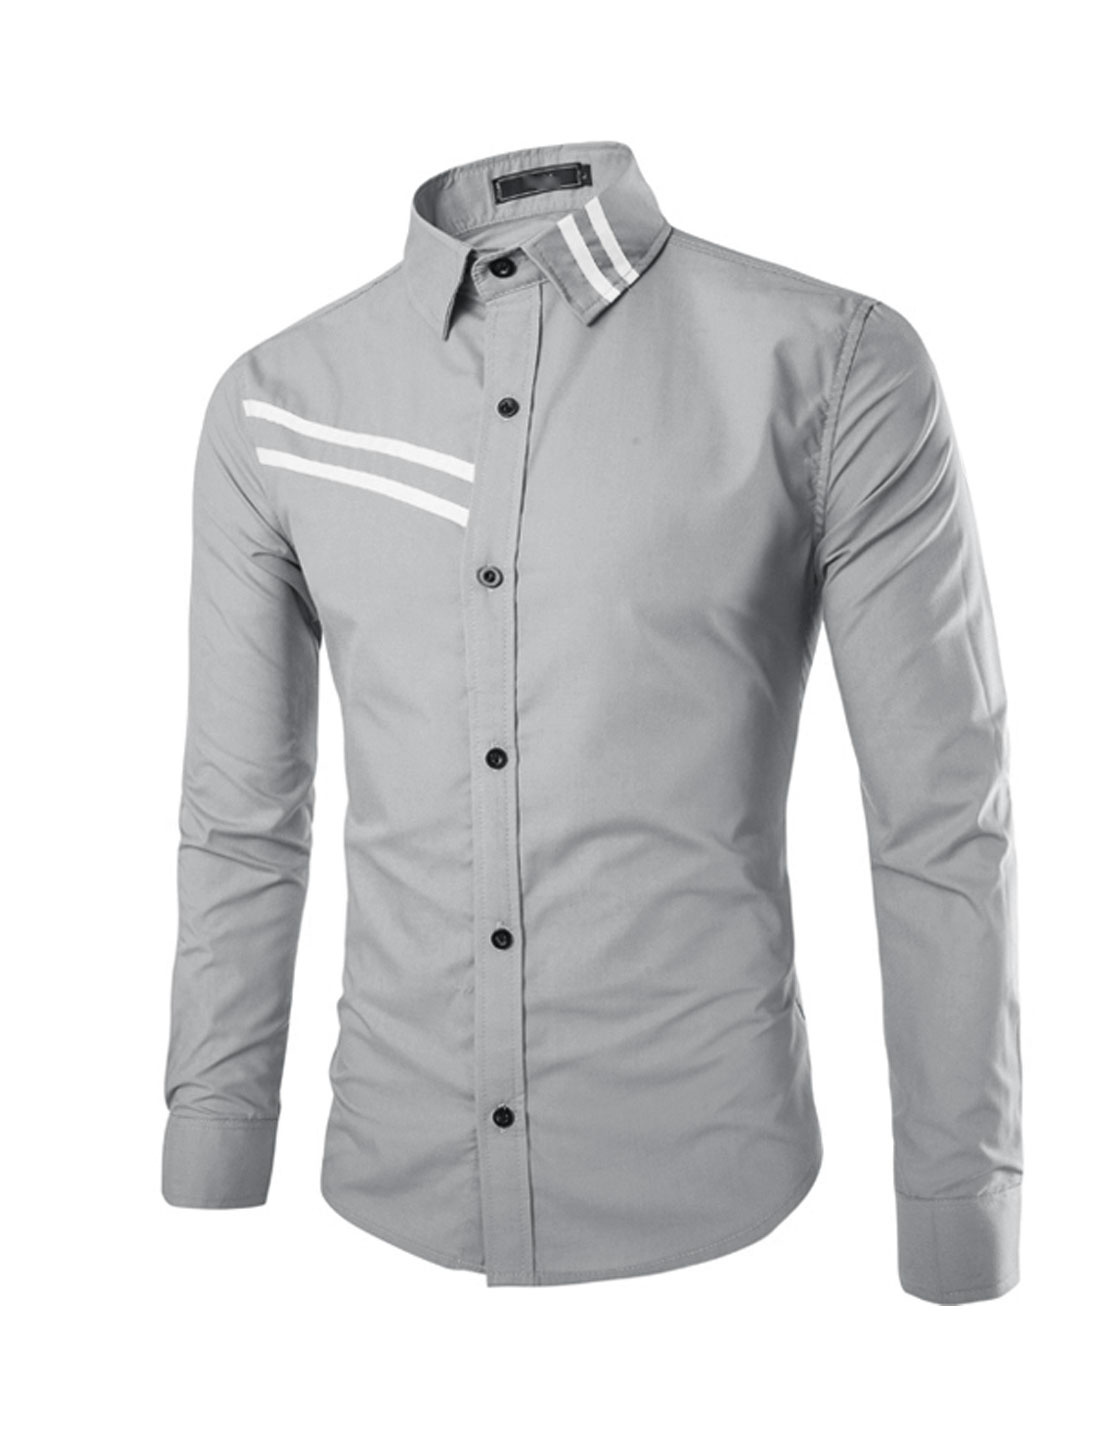 Men Point Collar Button Front Applique Detail Long Sleeve Shirts Gray S